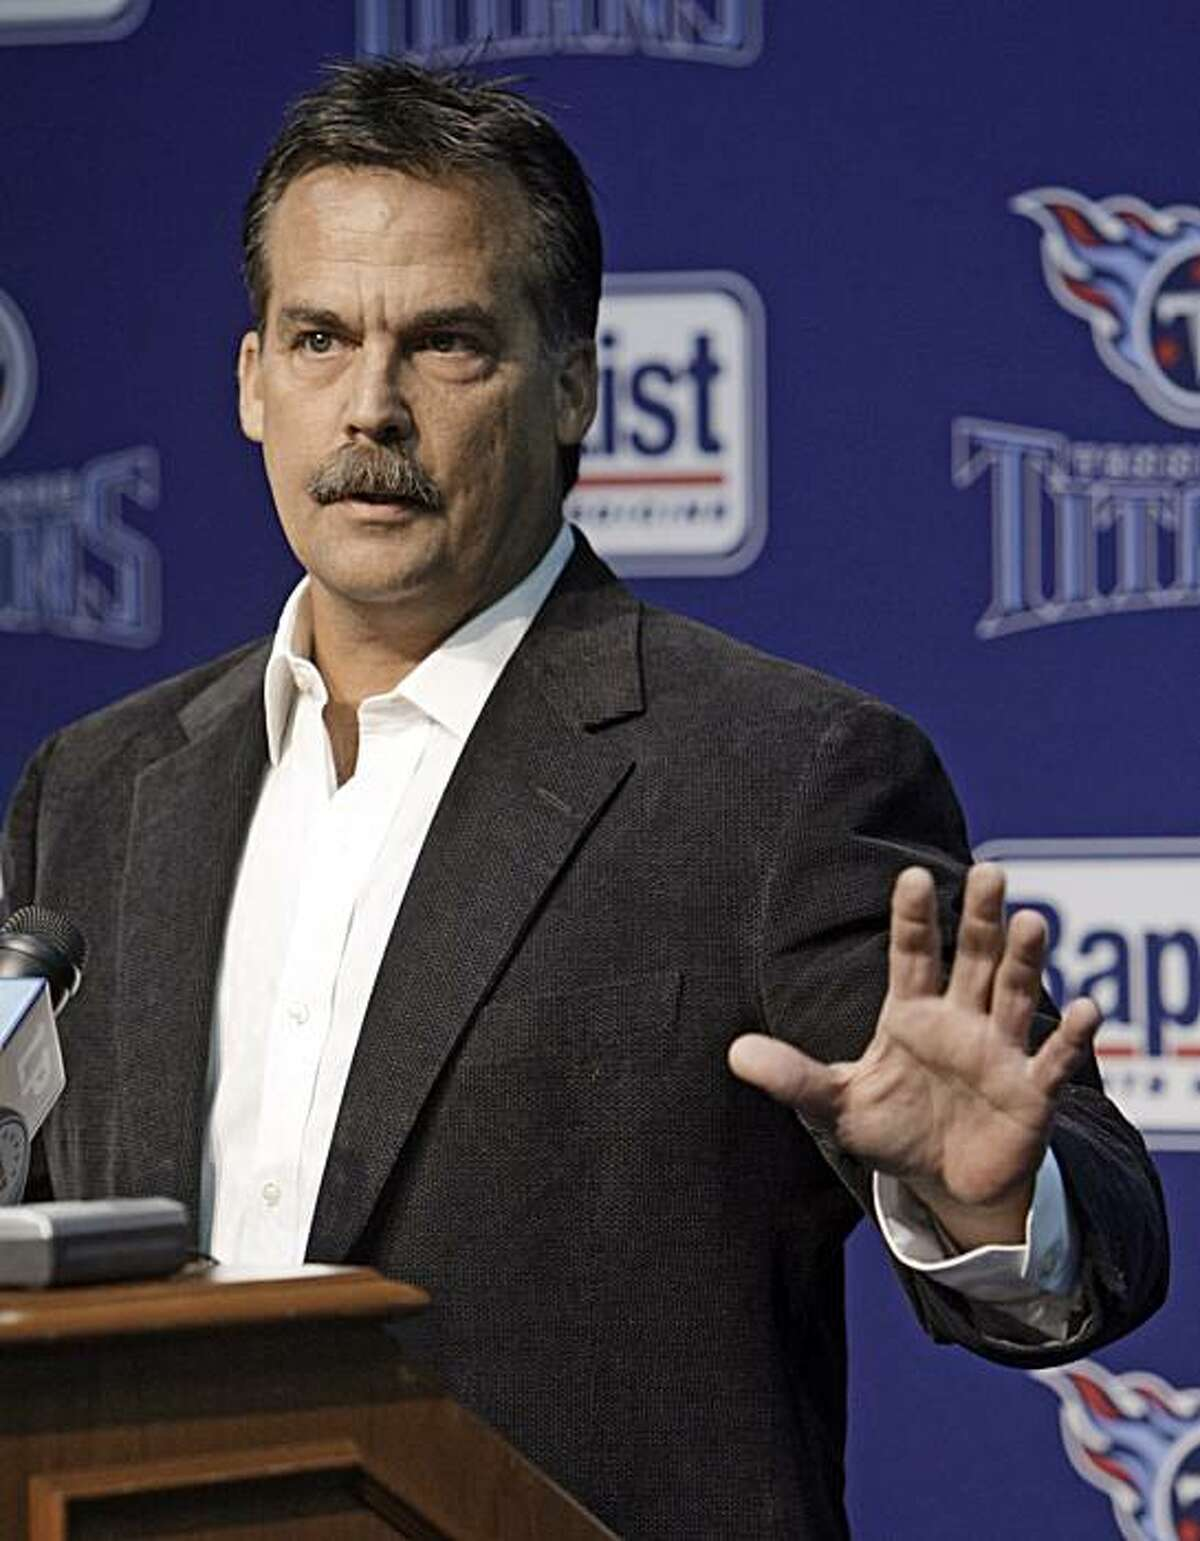 Tennessee Titans head coach Jeff Fisher talks about Steve McNair, one of his former players, in Nashville, Tenn., Monday, July 6, 2009. McNair, a former NFL quarterback with the Houston Oilers, Tennessee Titans, and Baltimore Ravens, was found dead of gunshot wounds along with a 20-year-old woman in a downtown Nashville condominium July 4, according to police. (AP Photo/Mark Humphrey)